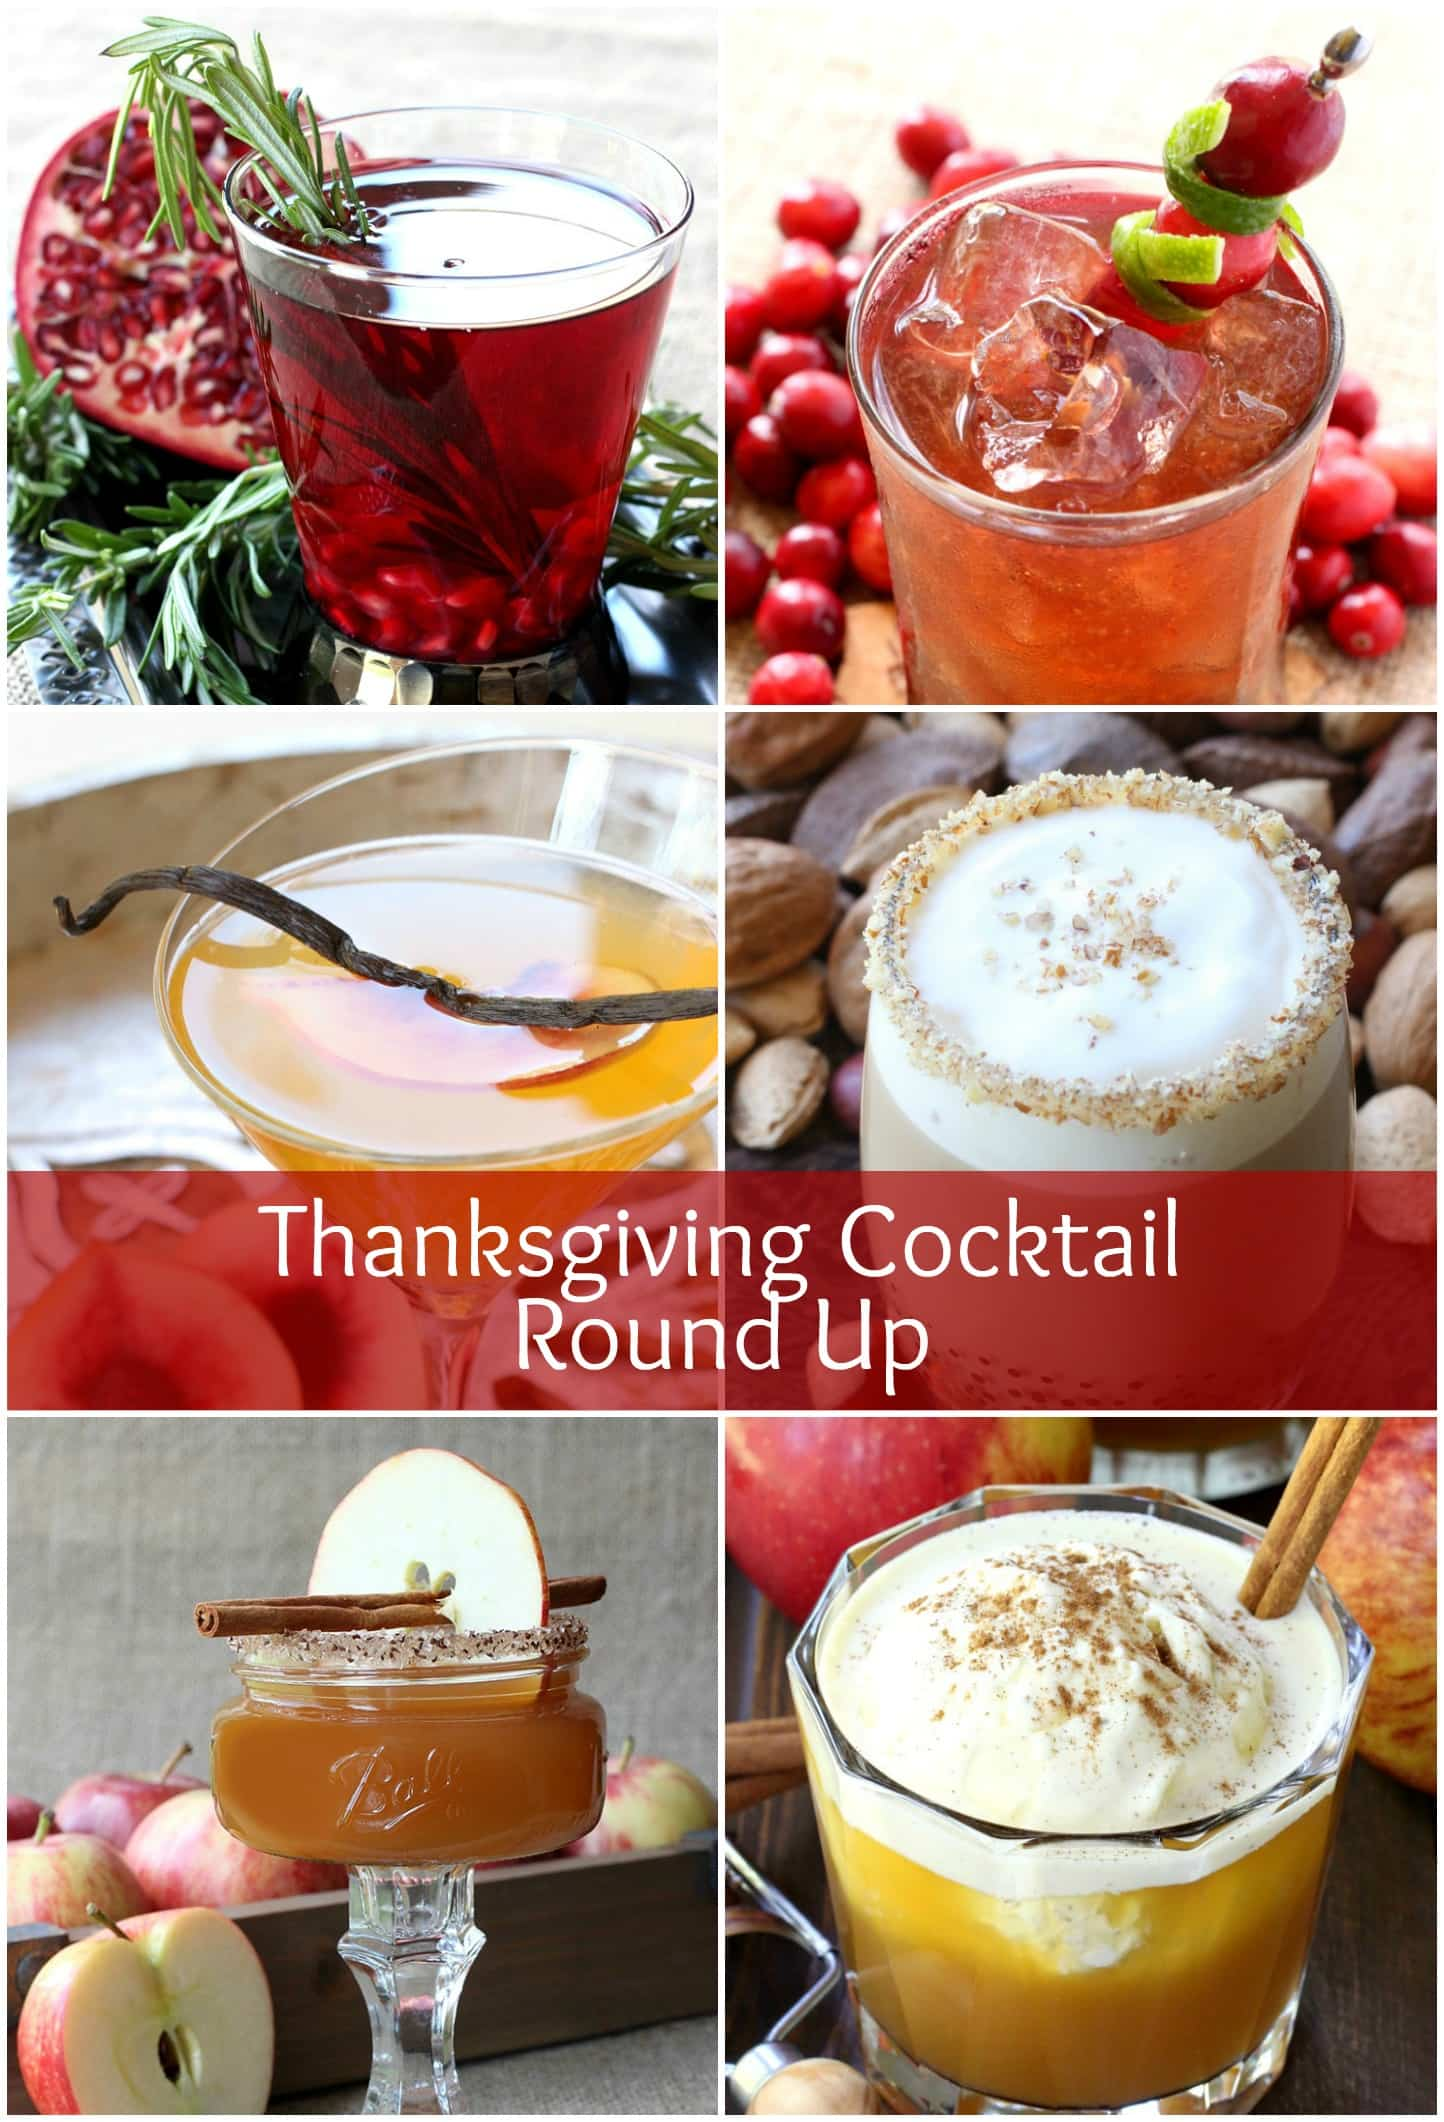 Thanksgiving cocktail round up mantitlement for Thanksgiving drinks alcoholic recipes